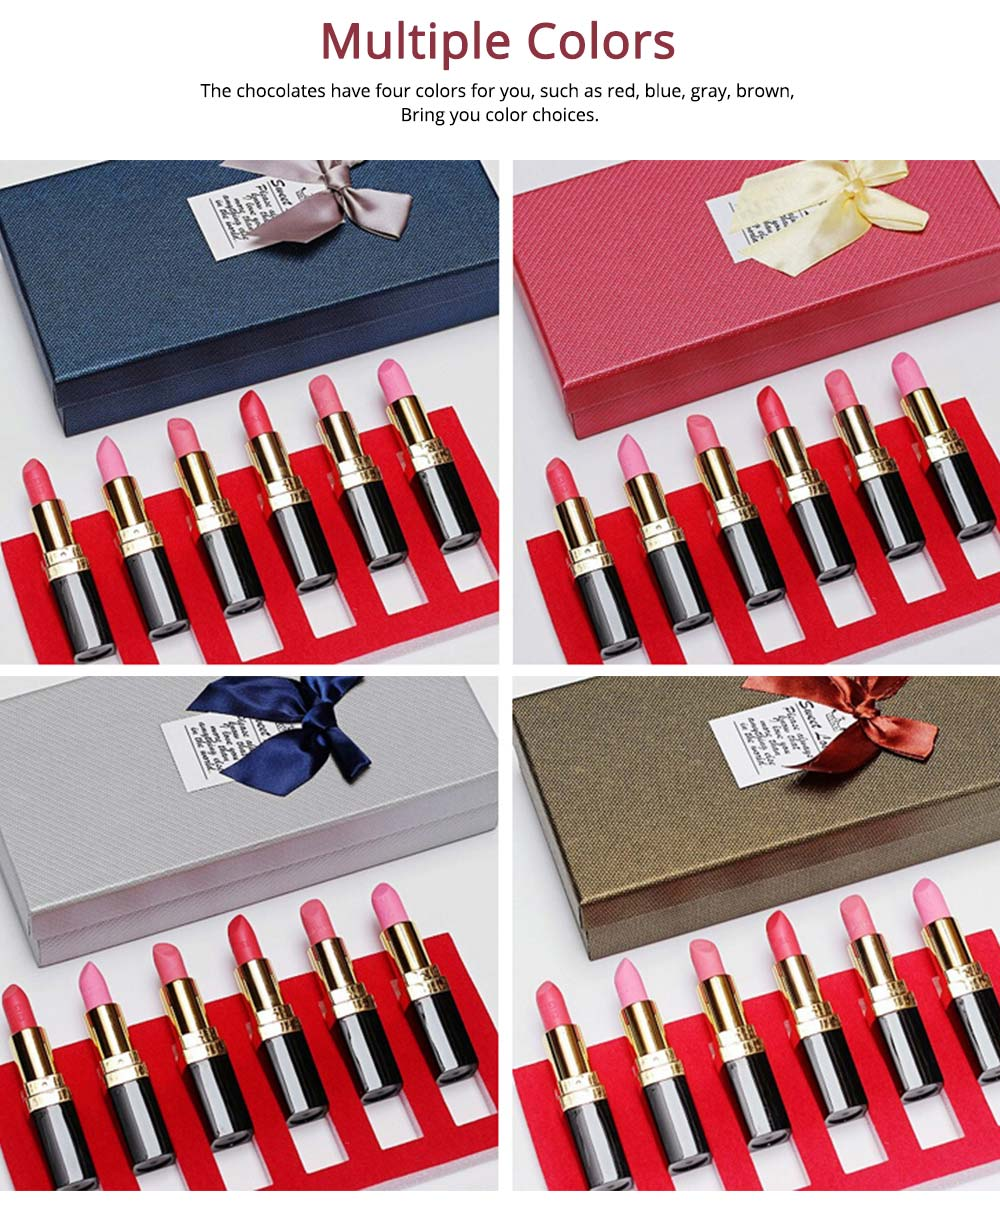 Chocolate Lipstick Shape Funny Gift for Girl, Women's Day Creative Sweet Candy April Fools Day Gift 2